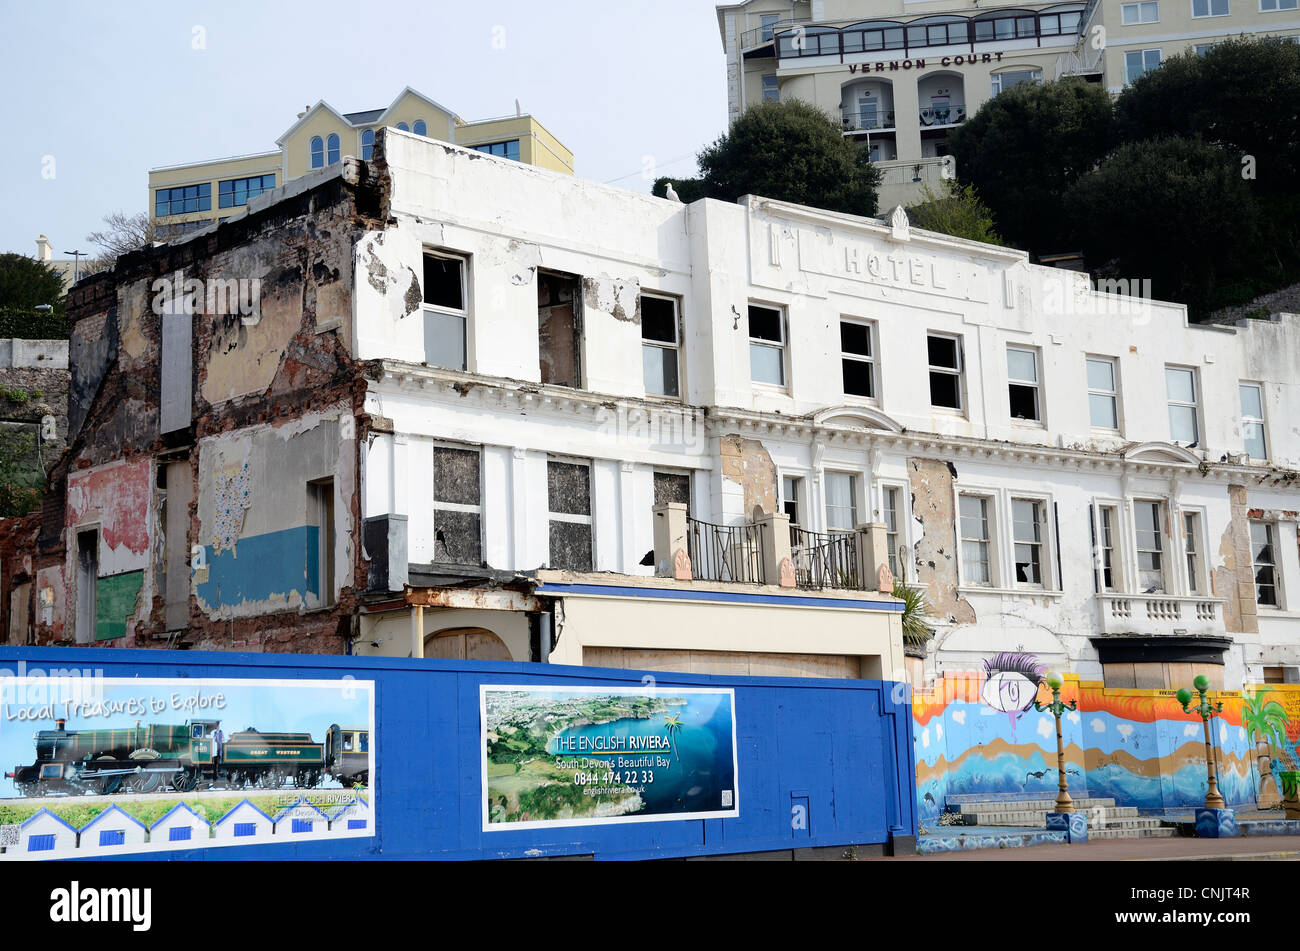 A dilapidated closed down hotel at torquay in devon, uk - Stock Image